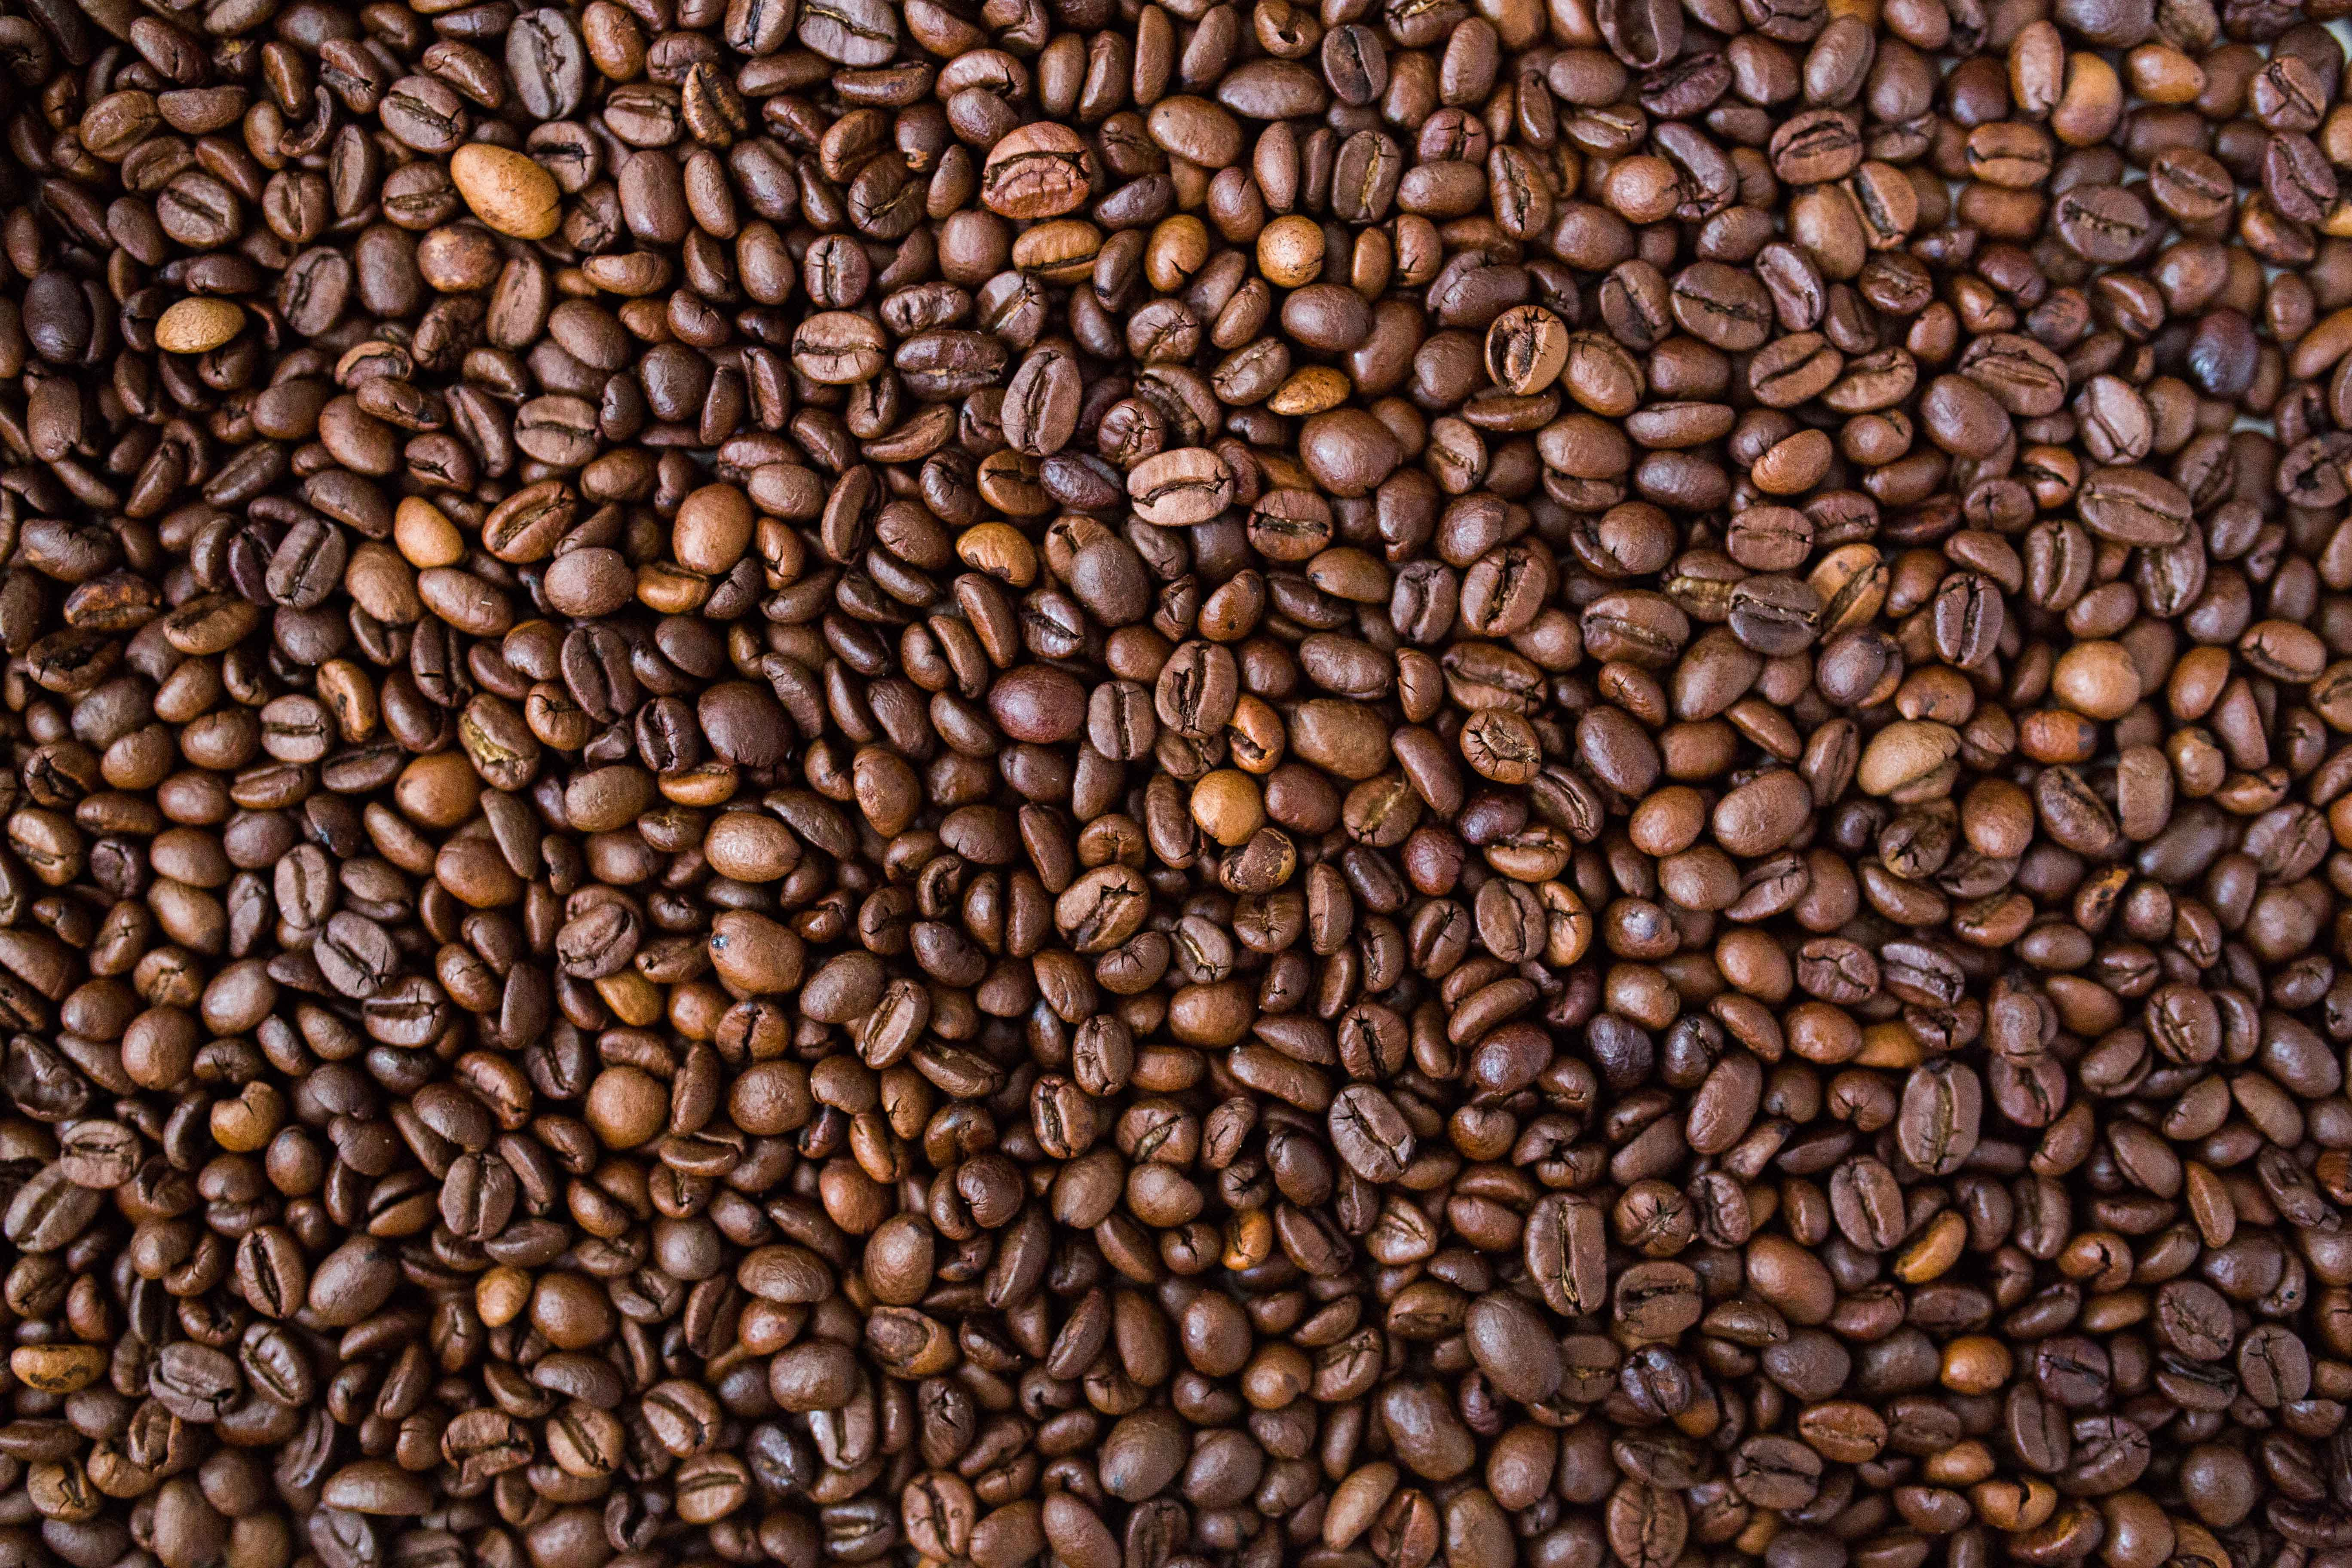 Coffee is full of nutrients and antioxidants